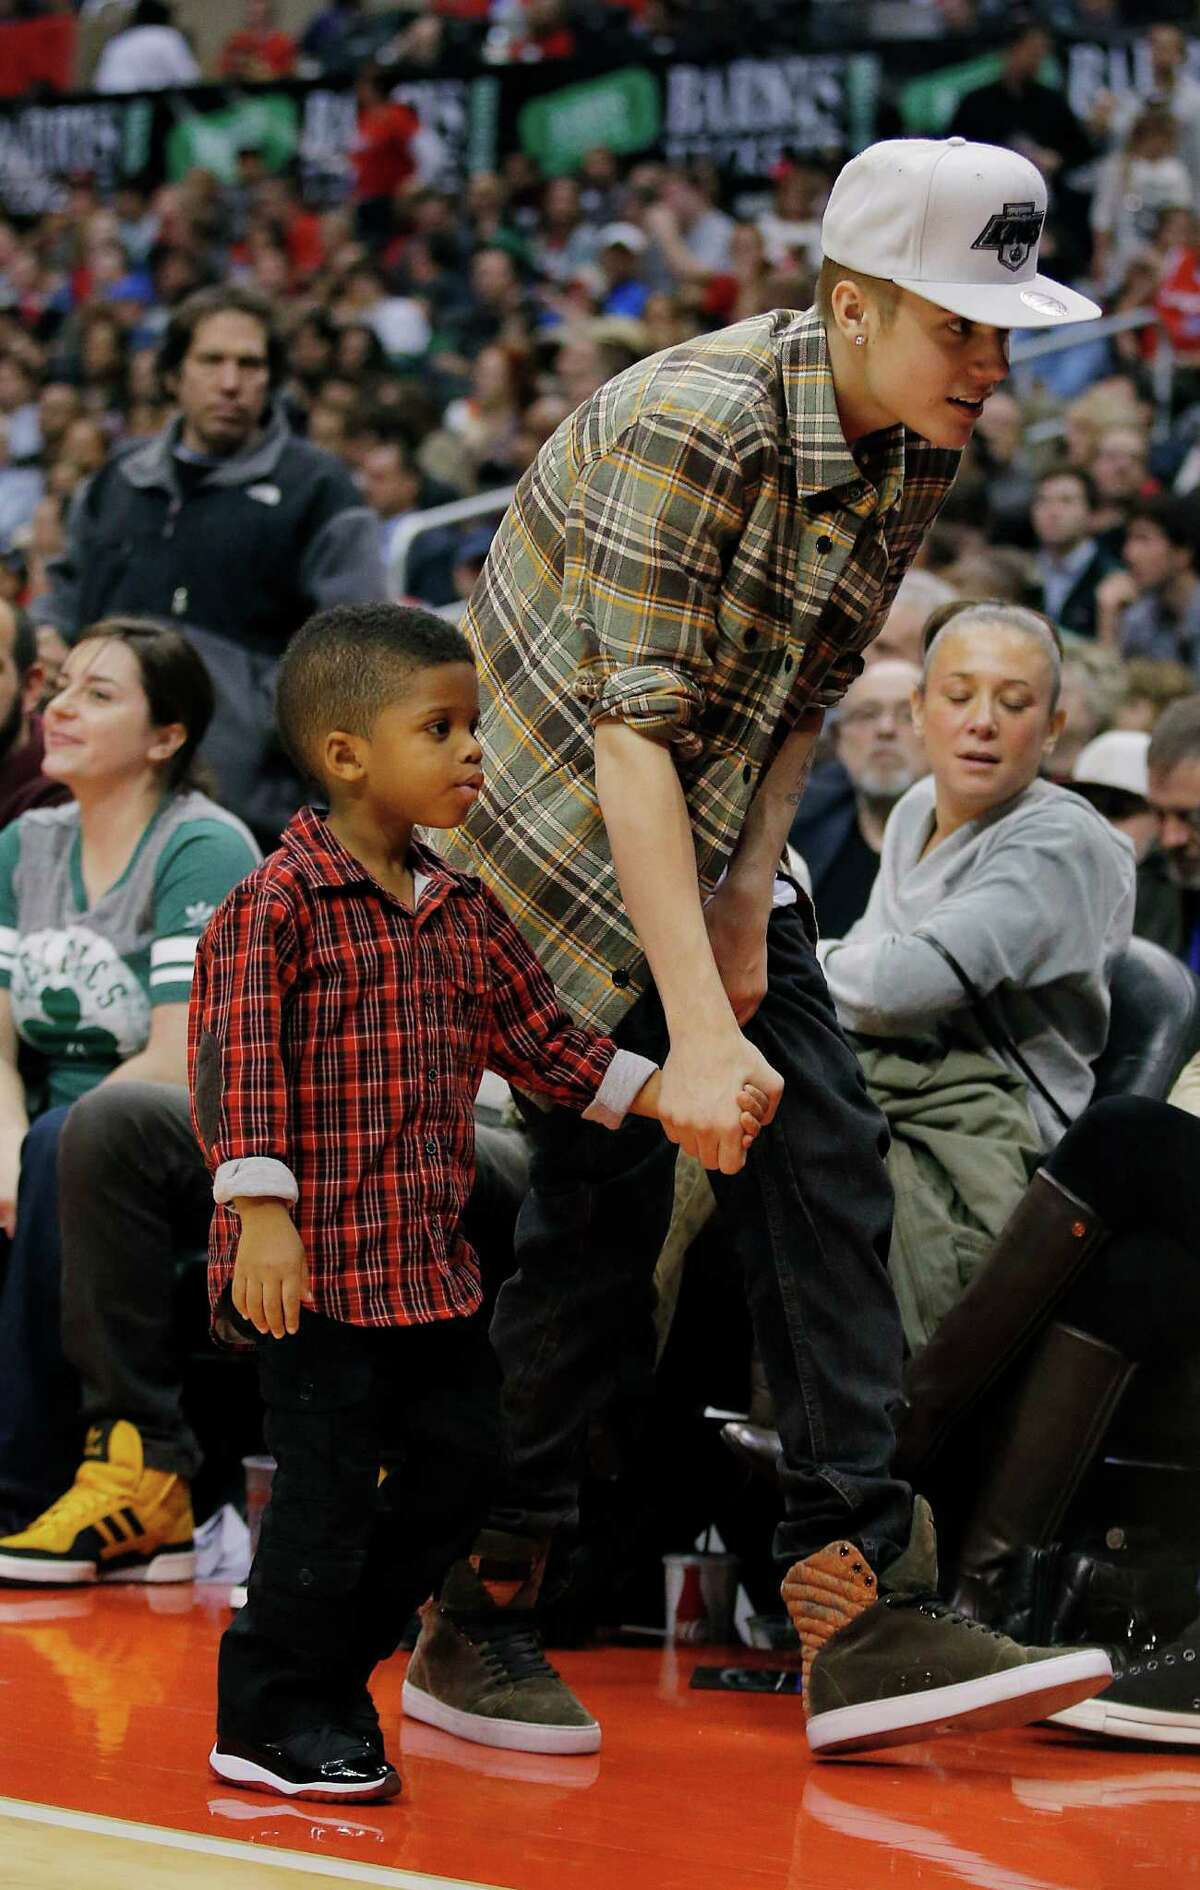 Singer Justin Bieber accompanies Los Angeles Clippers guard Chris Paul's son, Chris, during an NBA basketball game between the Los Angeles Clippers and the Boston Celtics in Los Angeles on Dec. 27, 2012.